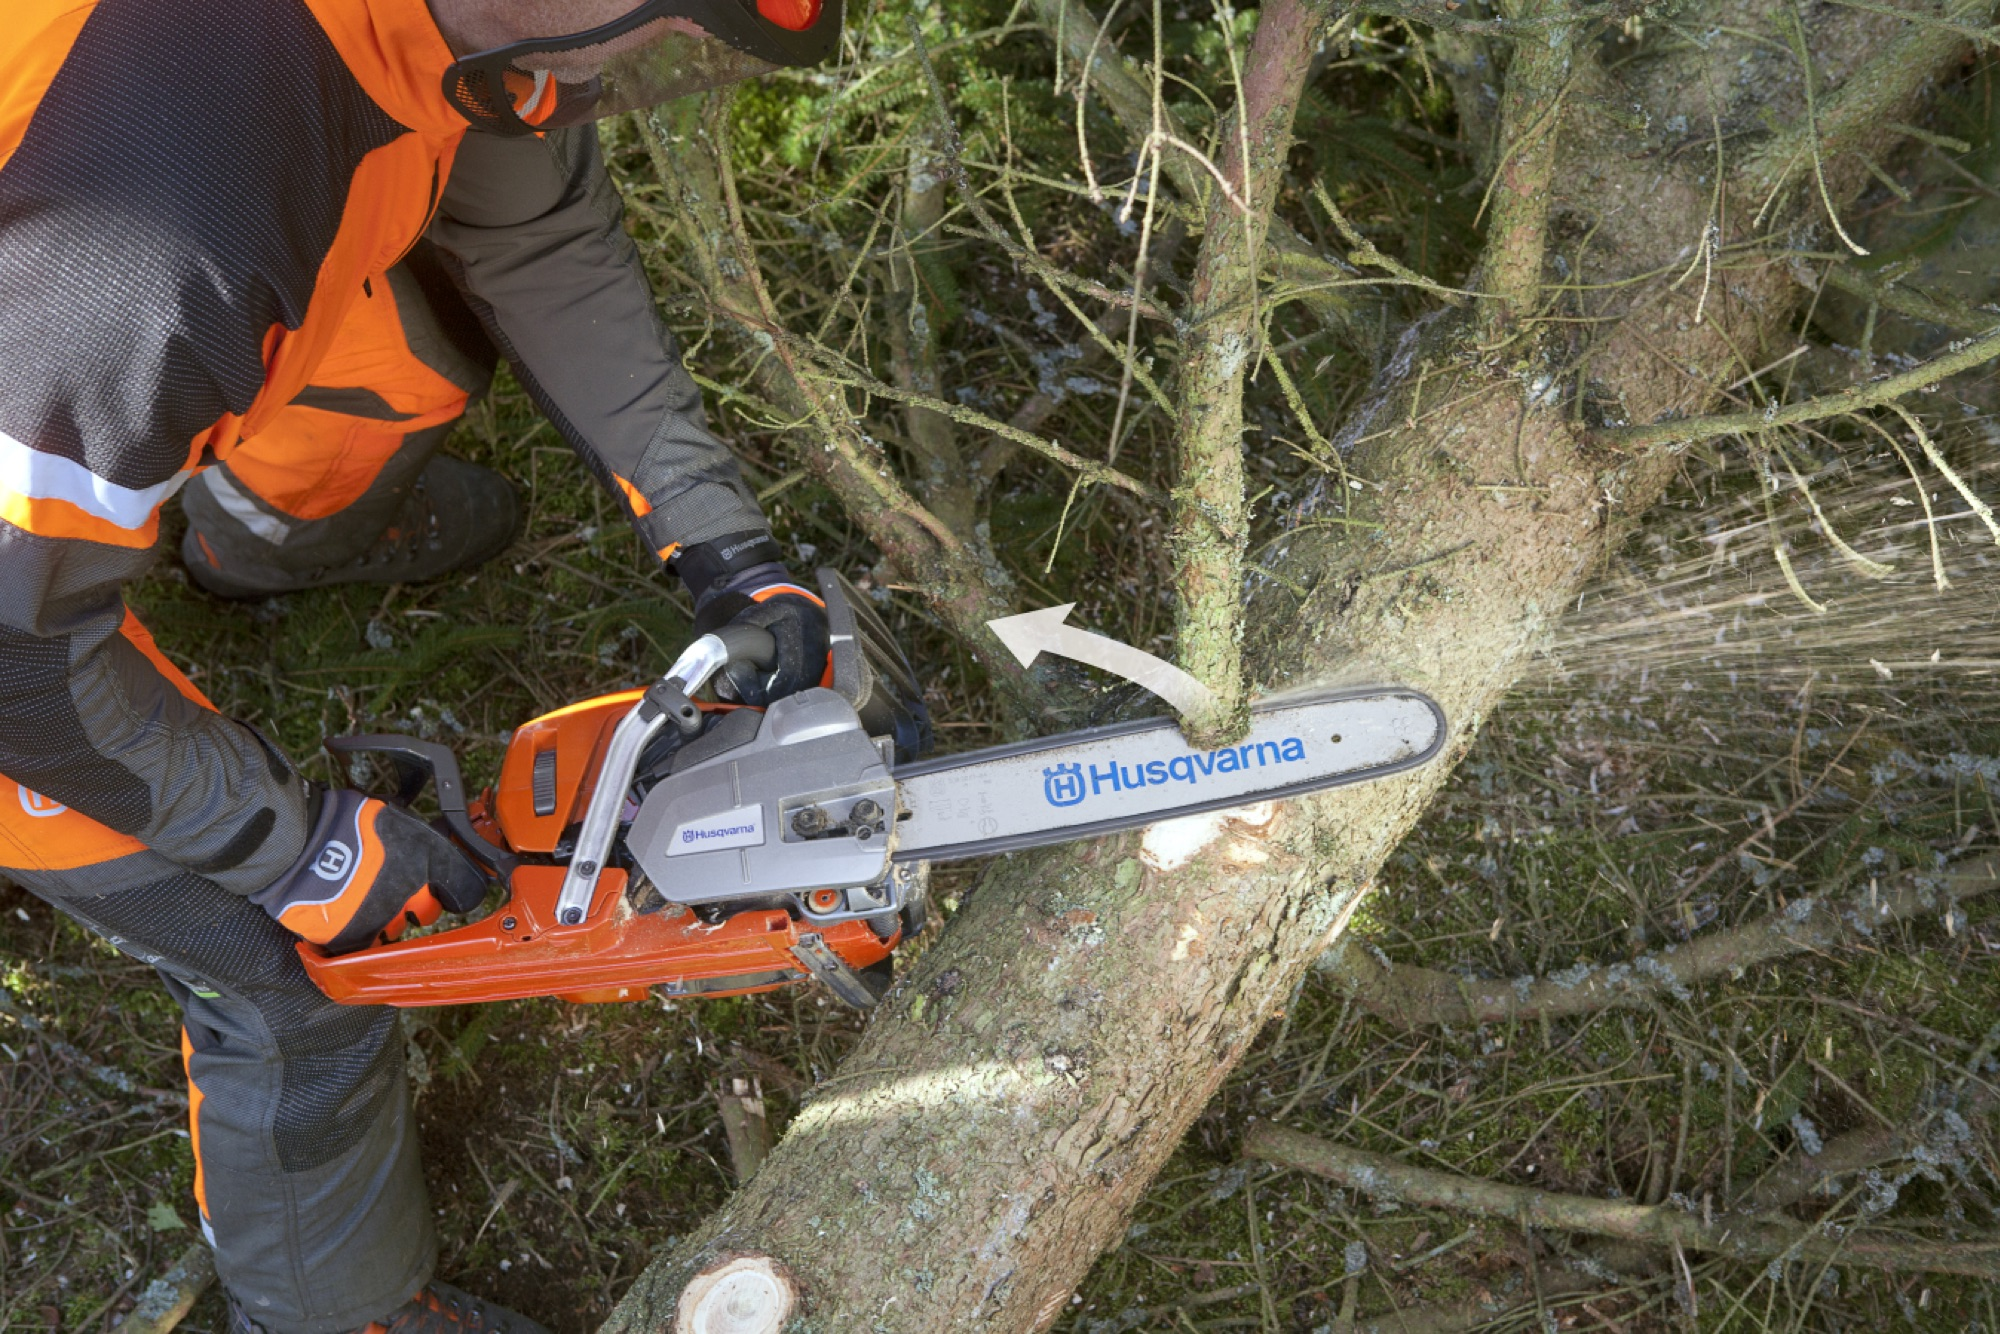 Forestry worker limbing a branch from right to left at the top side of the tree